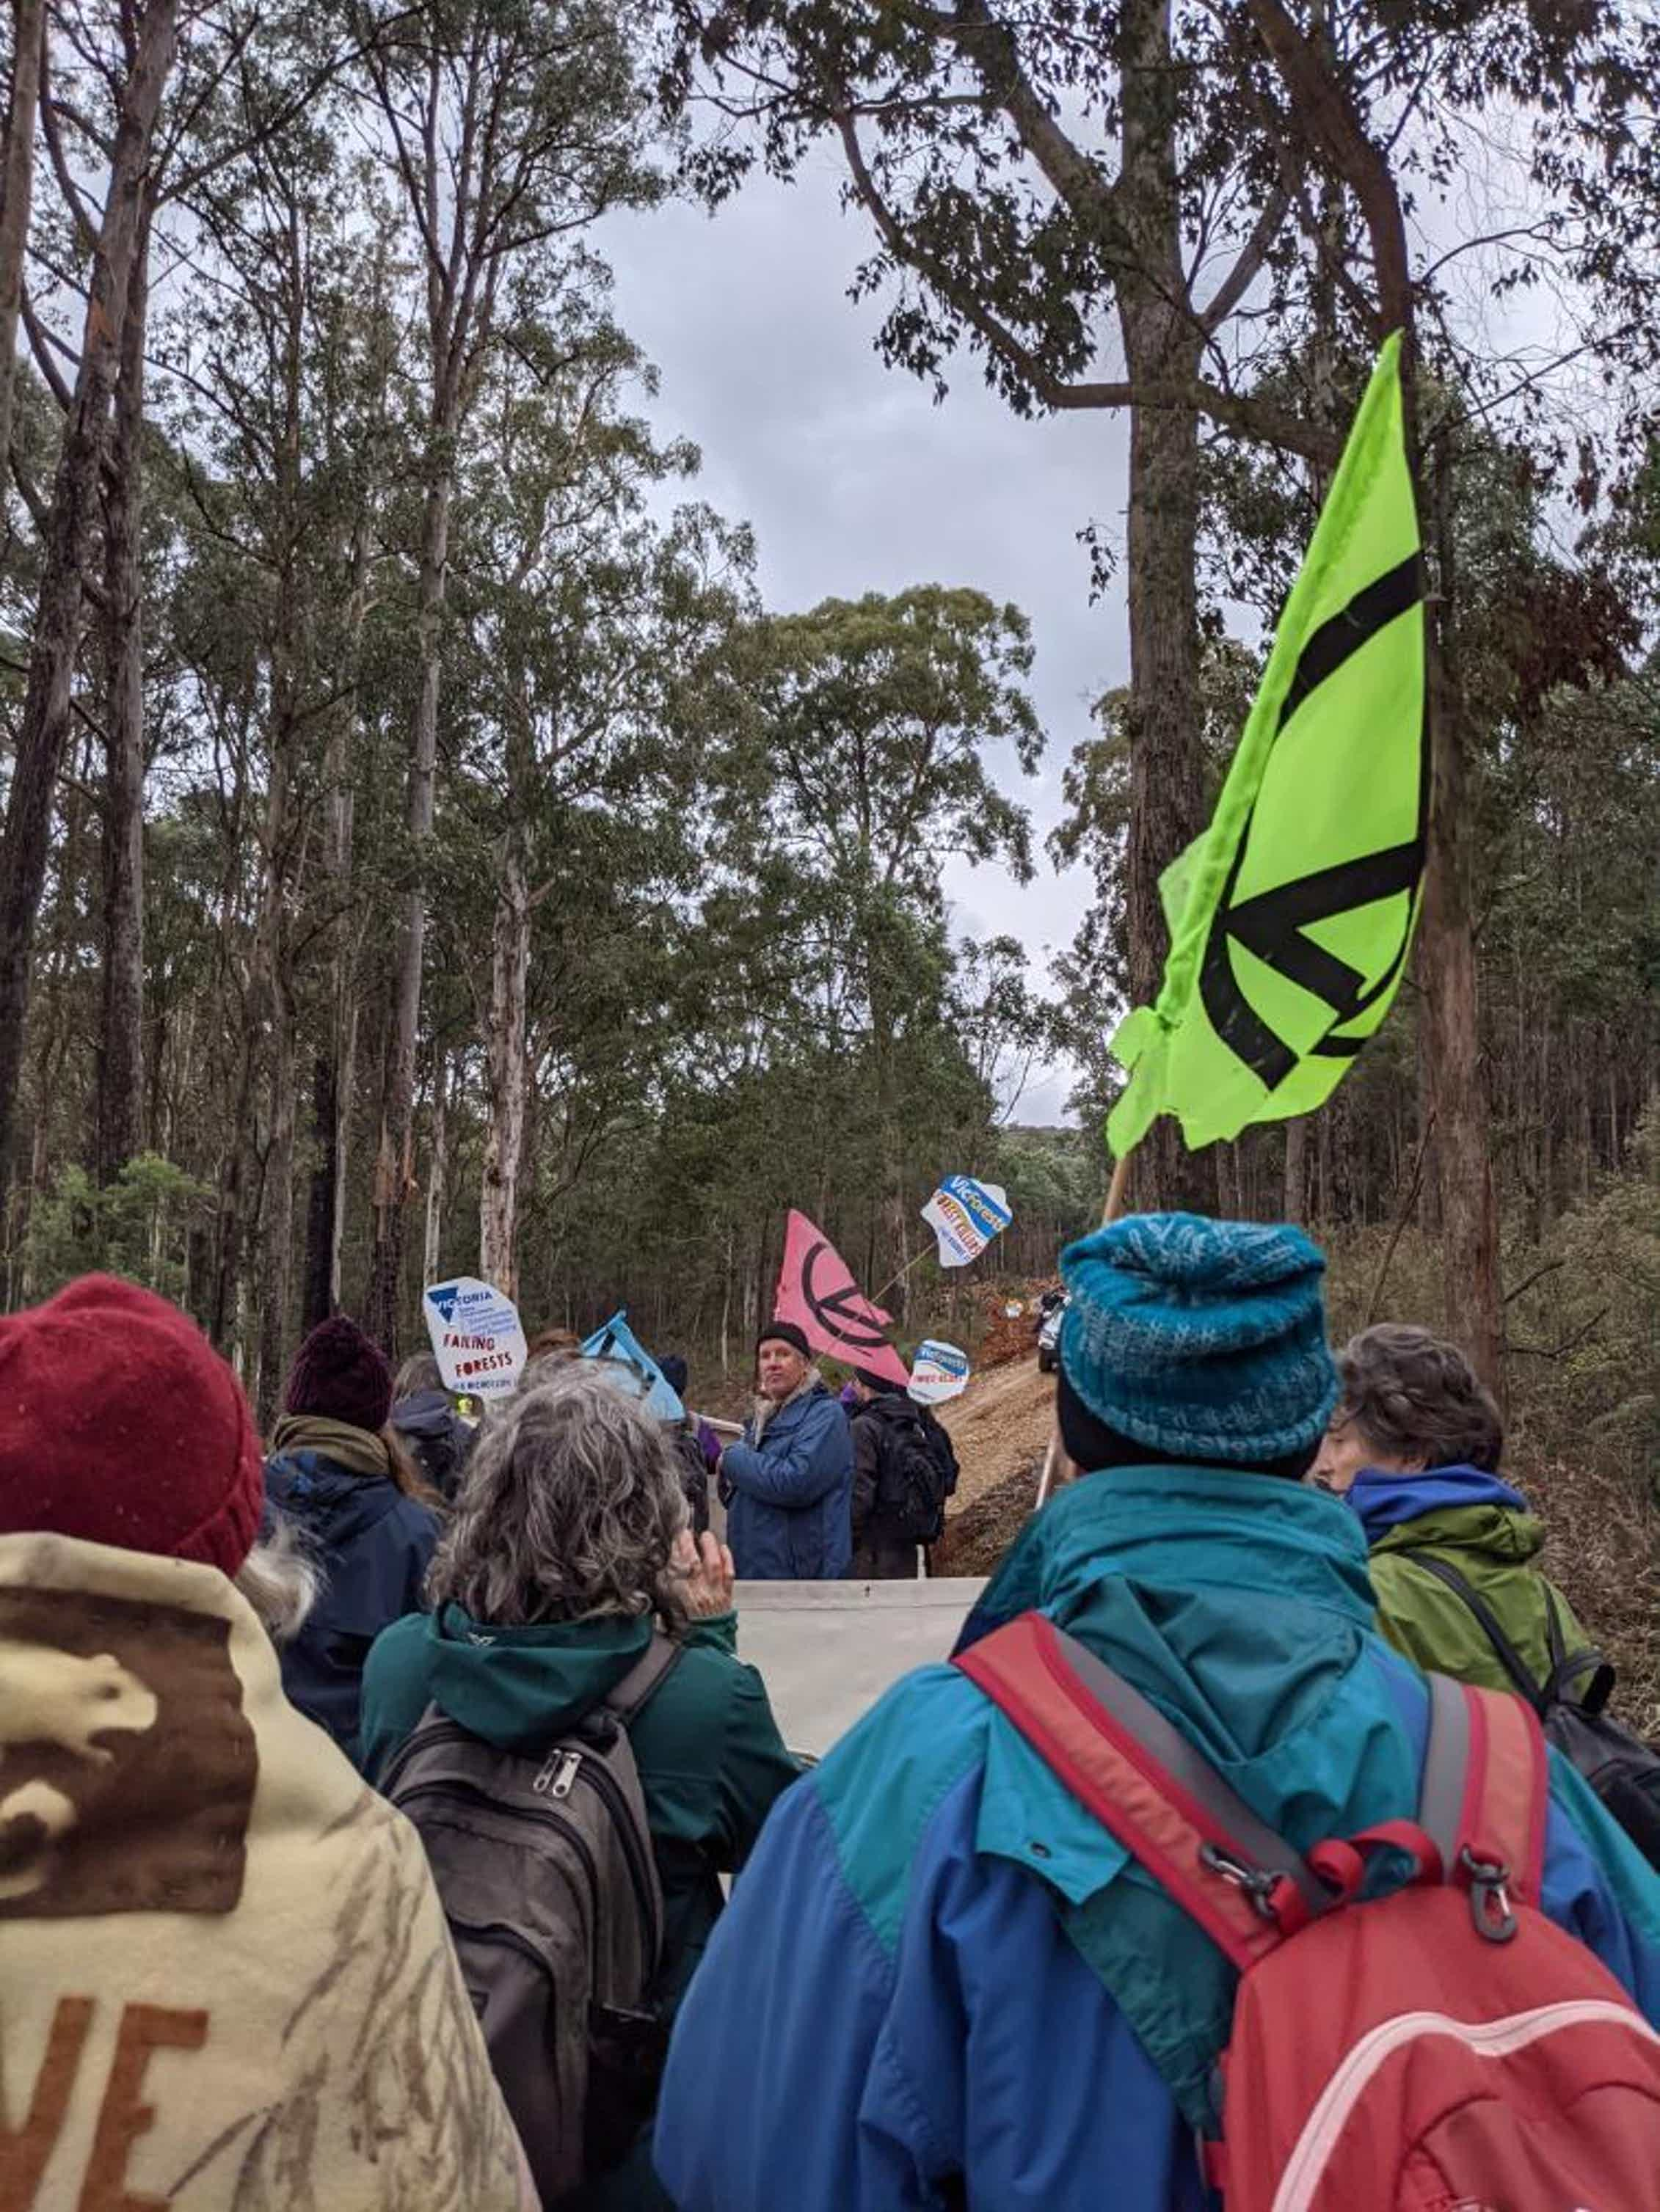 A Victorian logging company just won a controversial court appeal. Here's what it means for forest wildlife